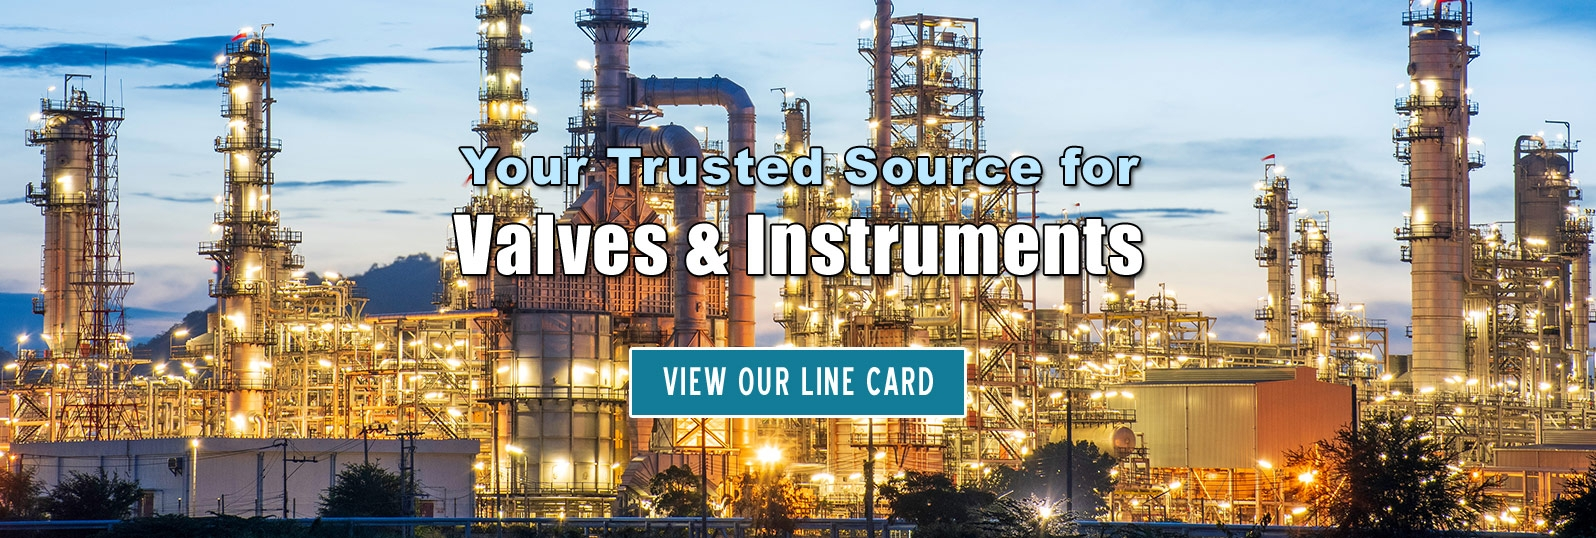 View our Line Card